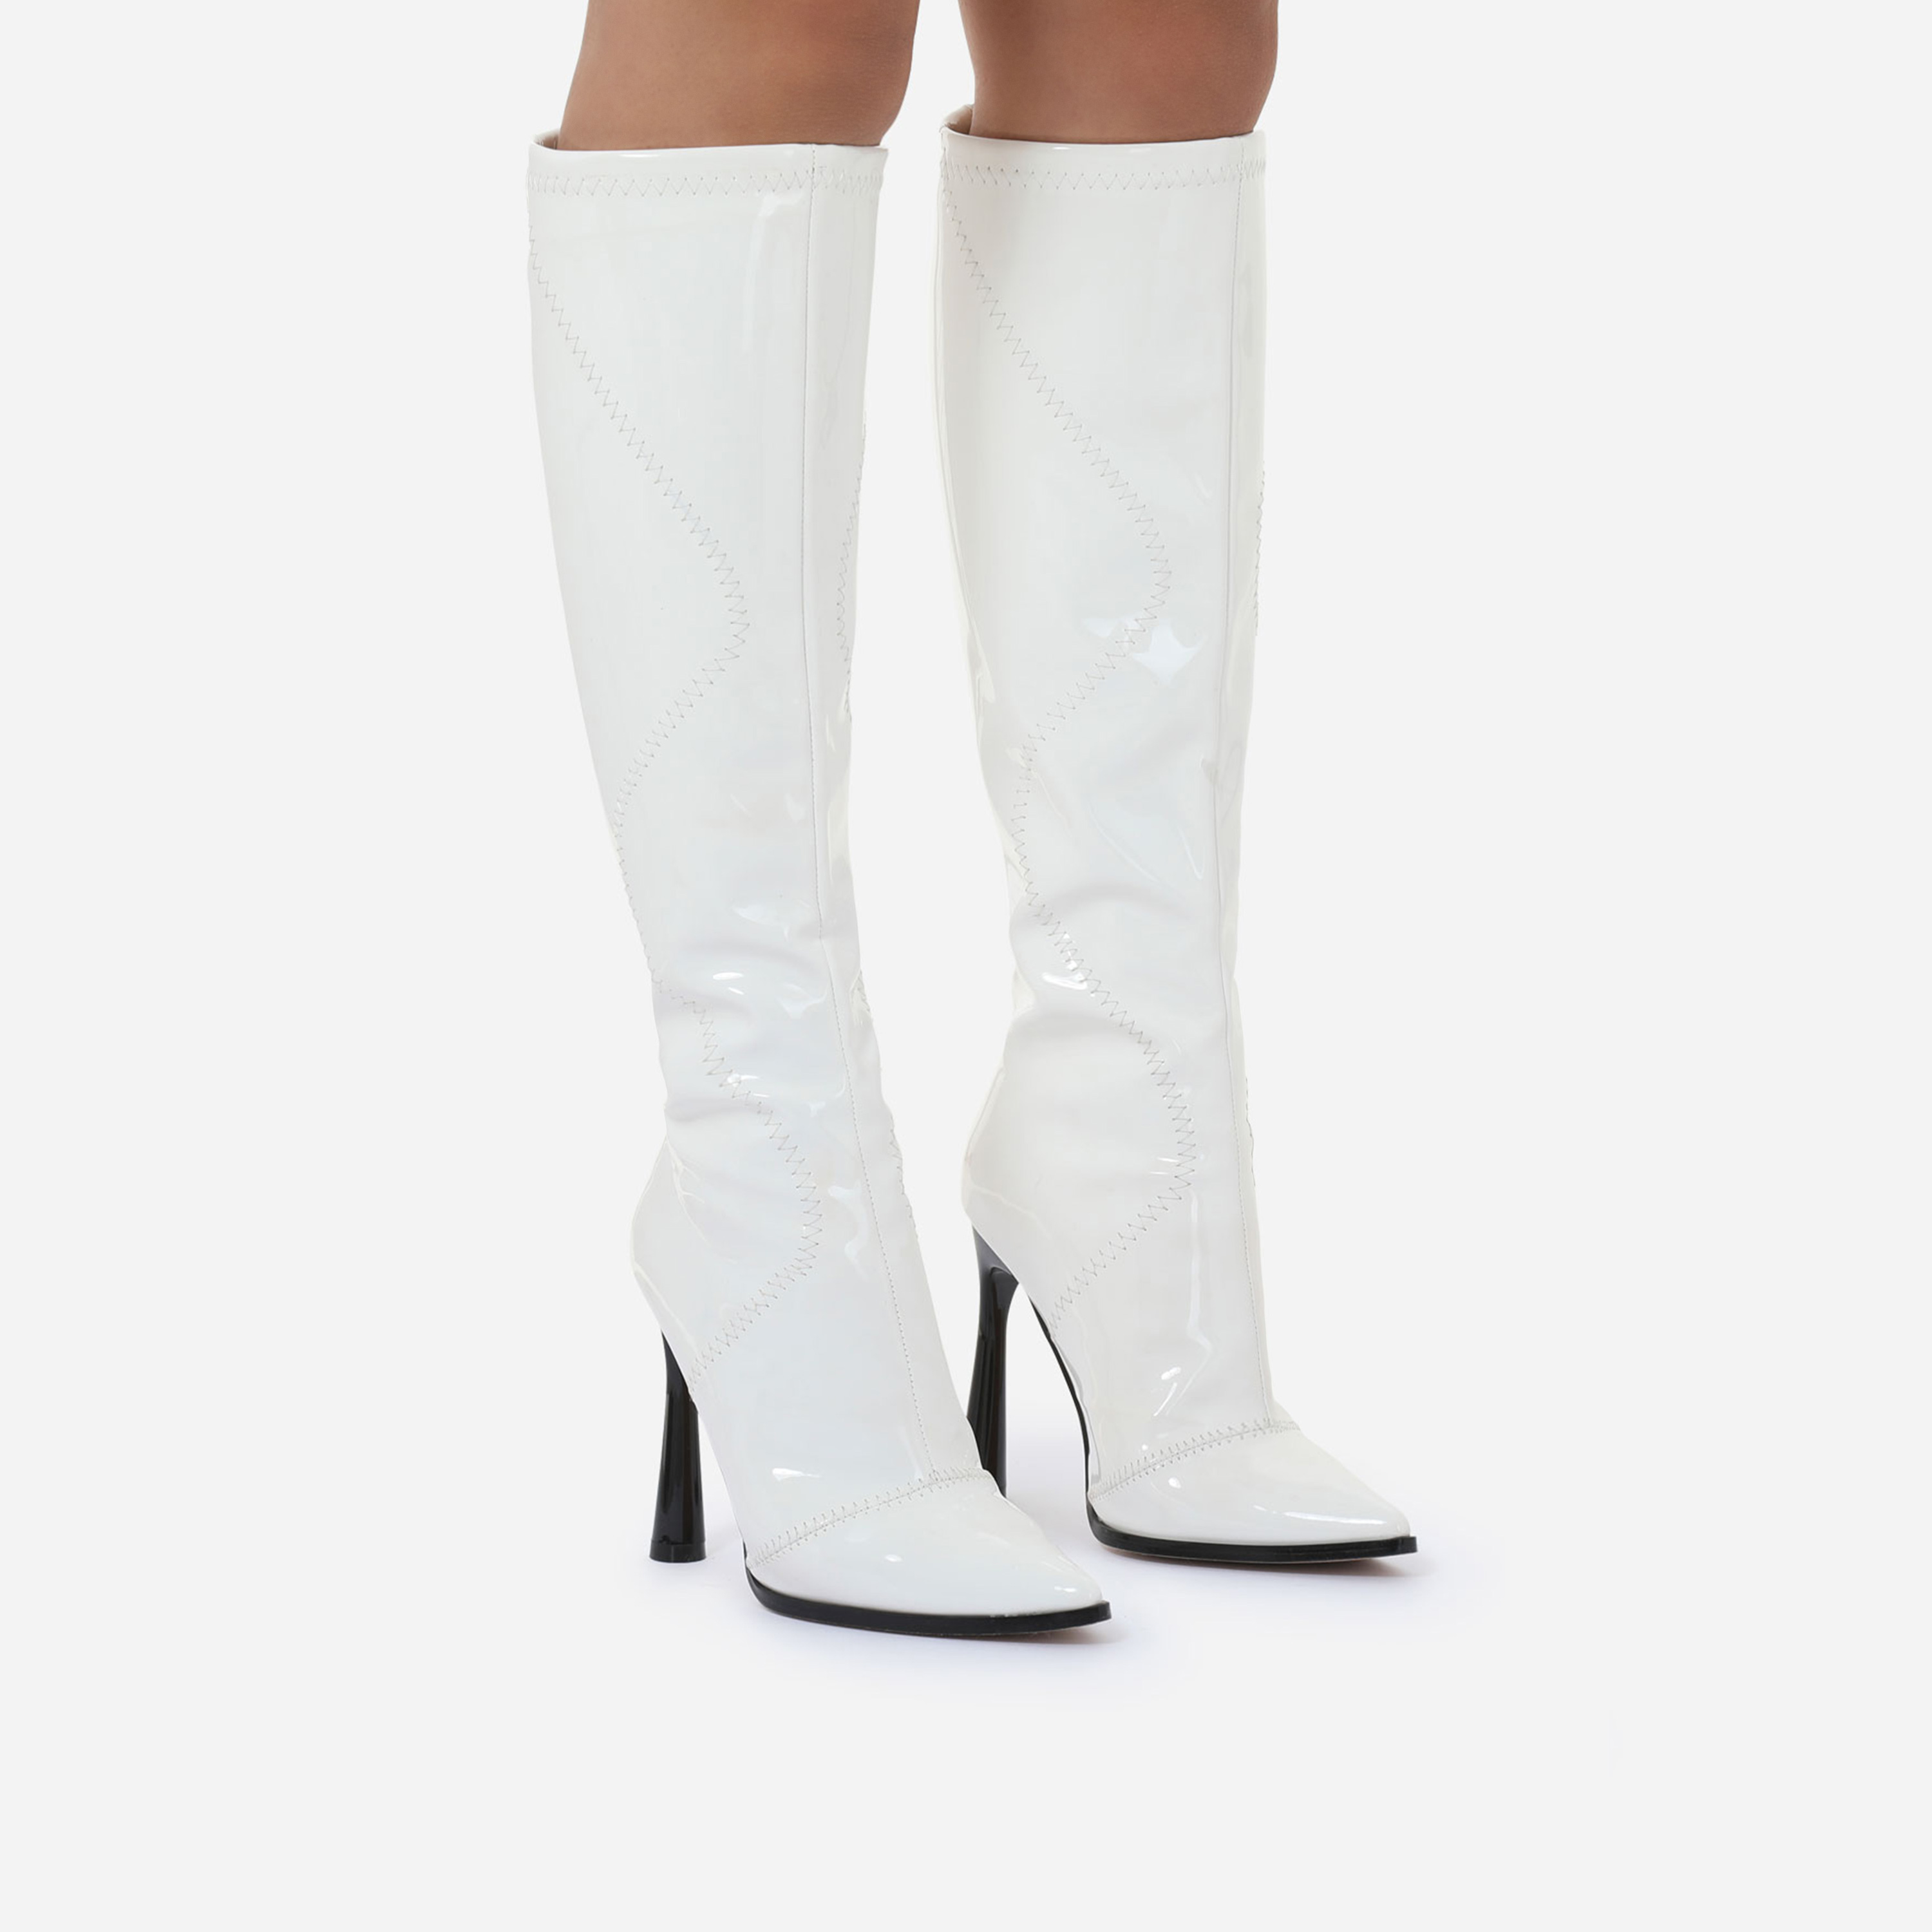 Austin Curved Heel Knee High Long Boot In White Patent